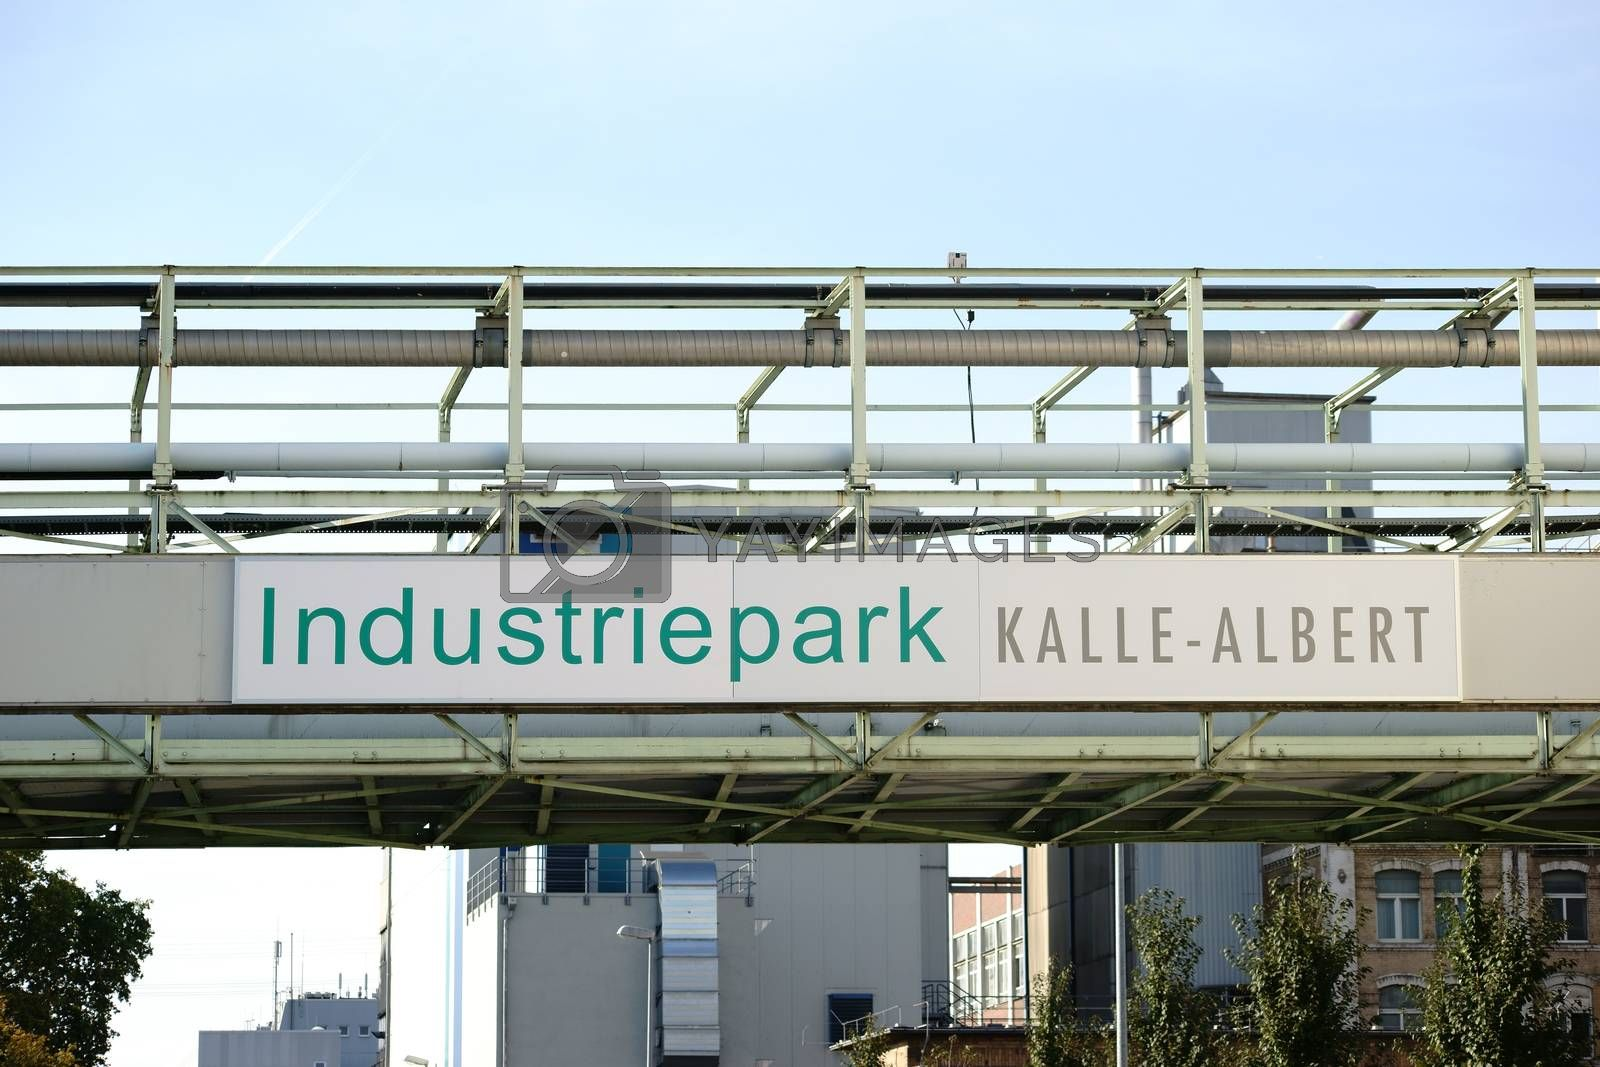 Wiesbaden, Germany - October 02, 2015: The entrance sign of the industrial park Kalle-Albert of the Hoechst AG on October 02, 2015 in Wiesbaden.